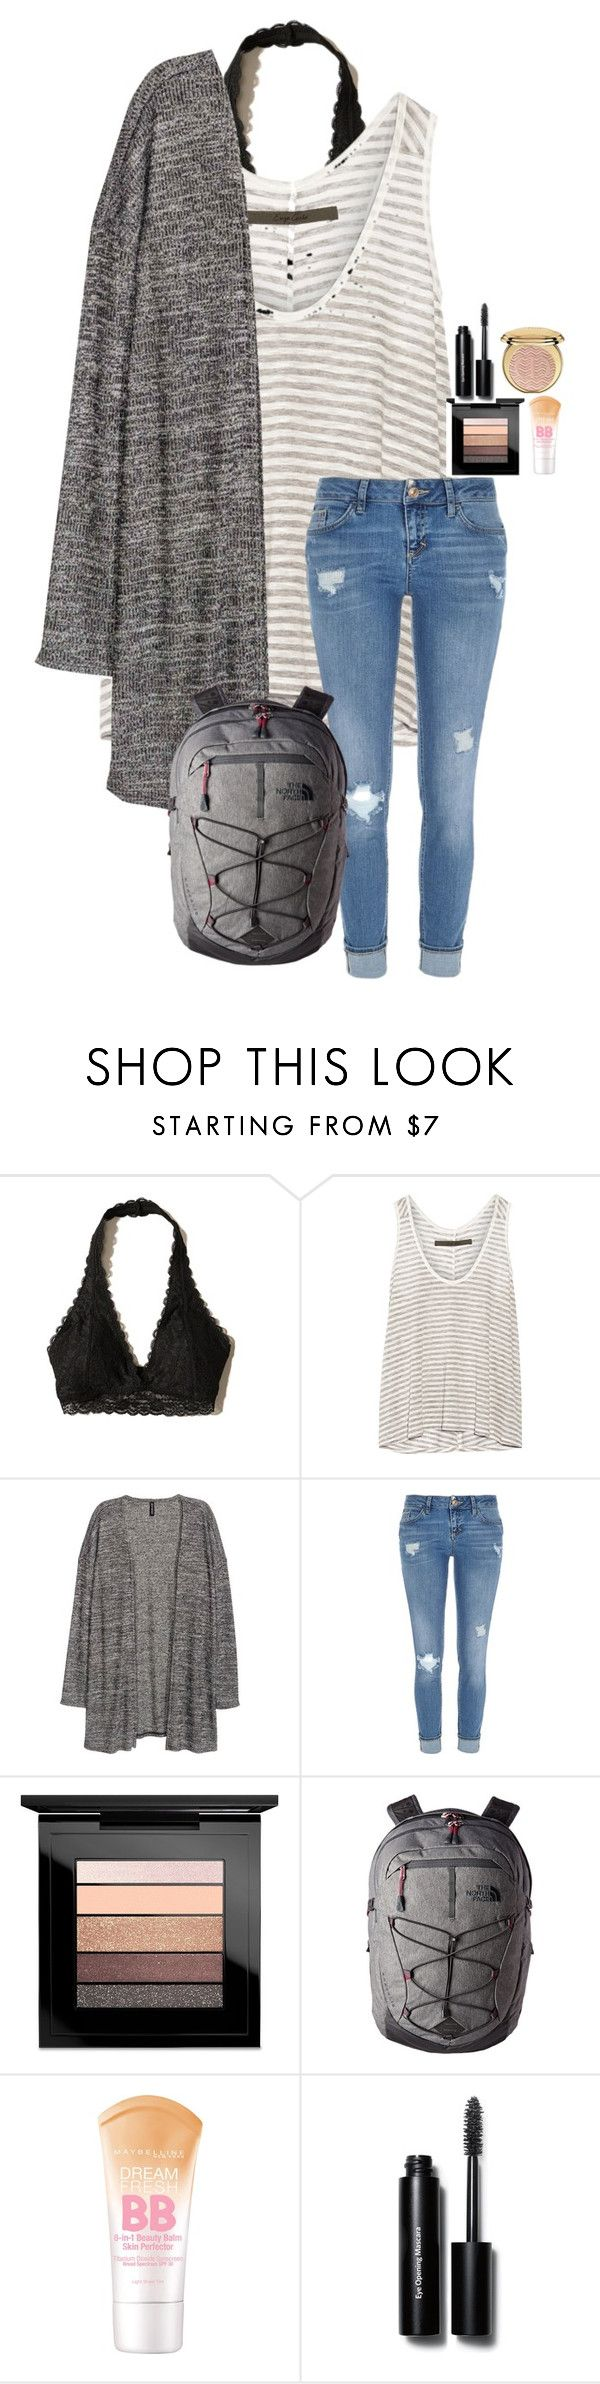 """"""""""" by amaya-leigh ❤ liked on Polyvore featuring Hollister Co., Enza Costa, River Island, MAC Cosmetics, The North Face, Maybelline, Bobbi Brown Cosmetics and Christian Dior"""